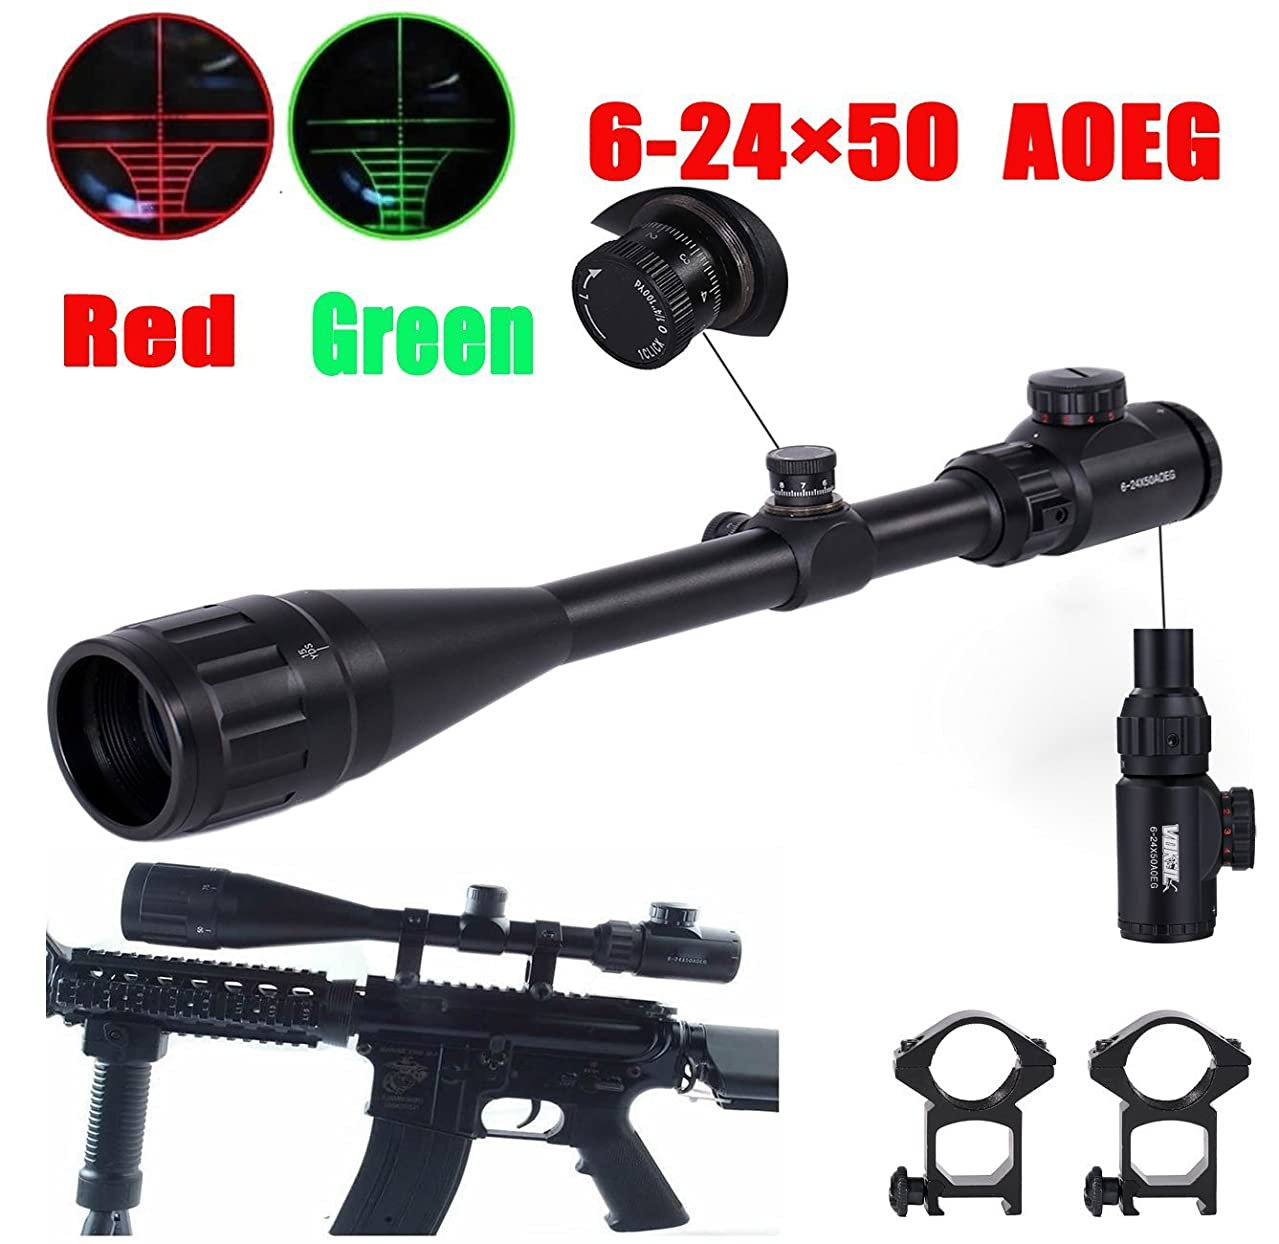 VOKUL 6-24x50mm Red & Green Hunting Rifle Scope Illuminated Crosshair Gun Scopes with Free Mounts and Lens Cover Illuminated Level: 5 Intensity (Red) and 5 Intensity (Green)